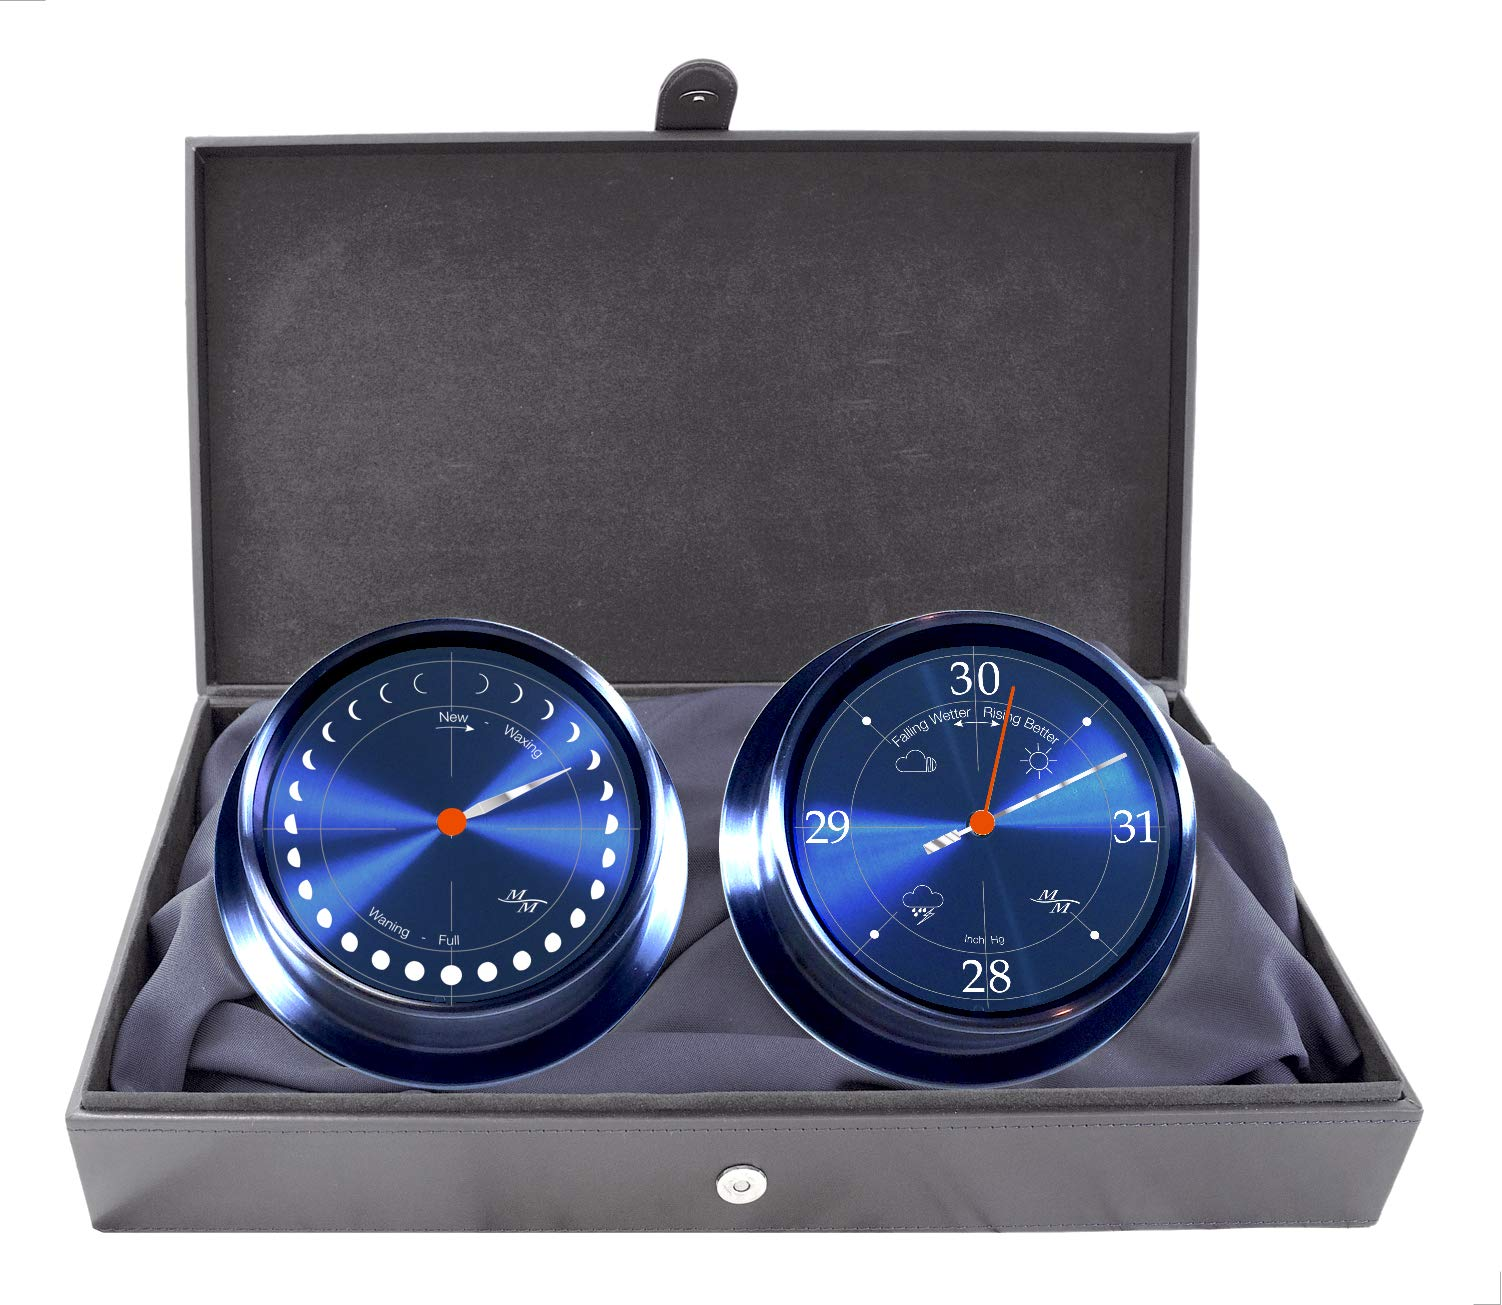 Master-Mariner Eclipse Collection Set, 5.75'' Diameter Astronomical Moon Phase Clock and Barometer Instruments, Graphite Steel Finish, Cobalt Blue dial